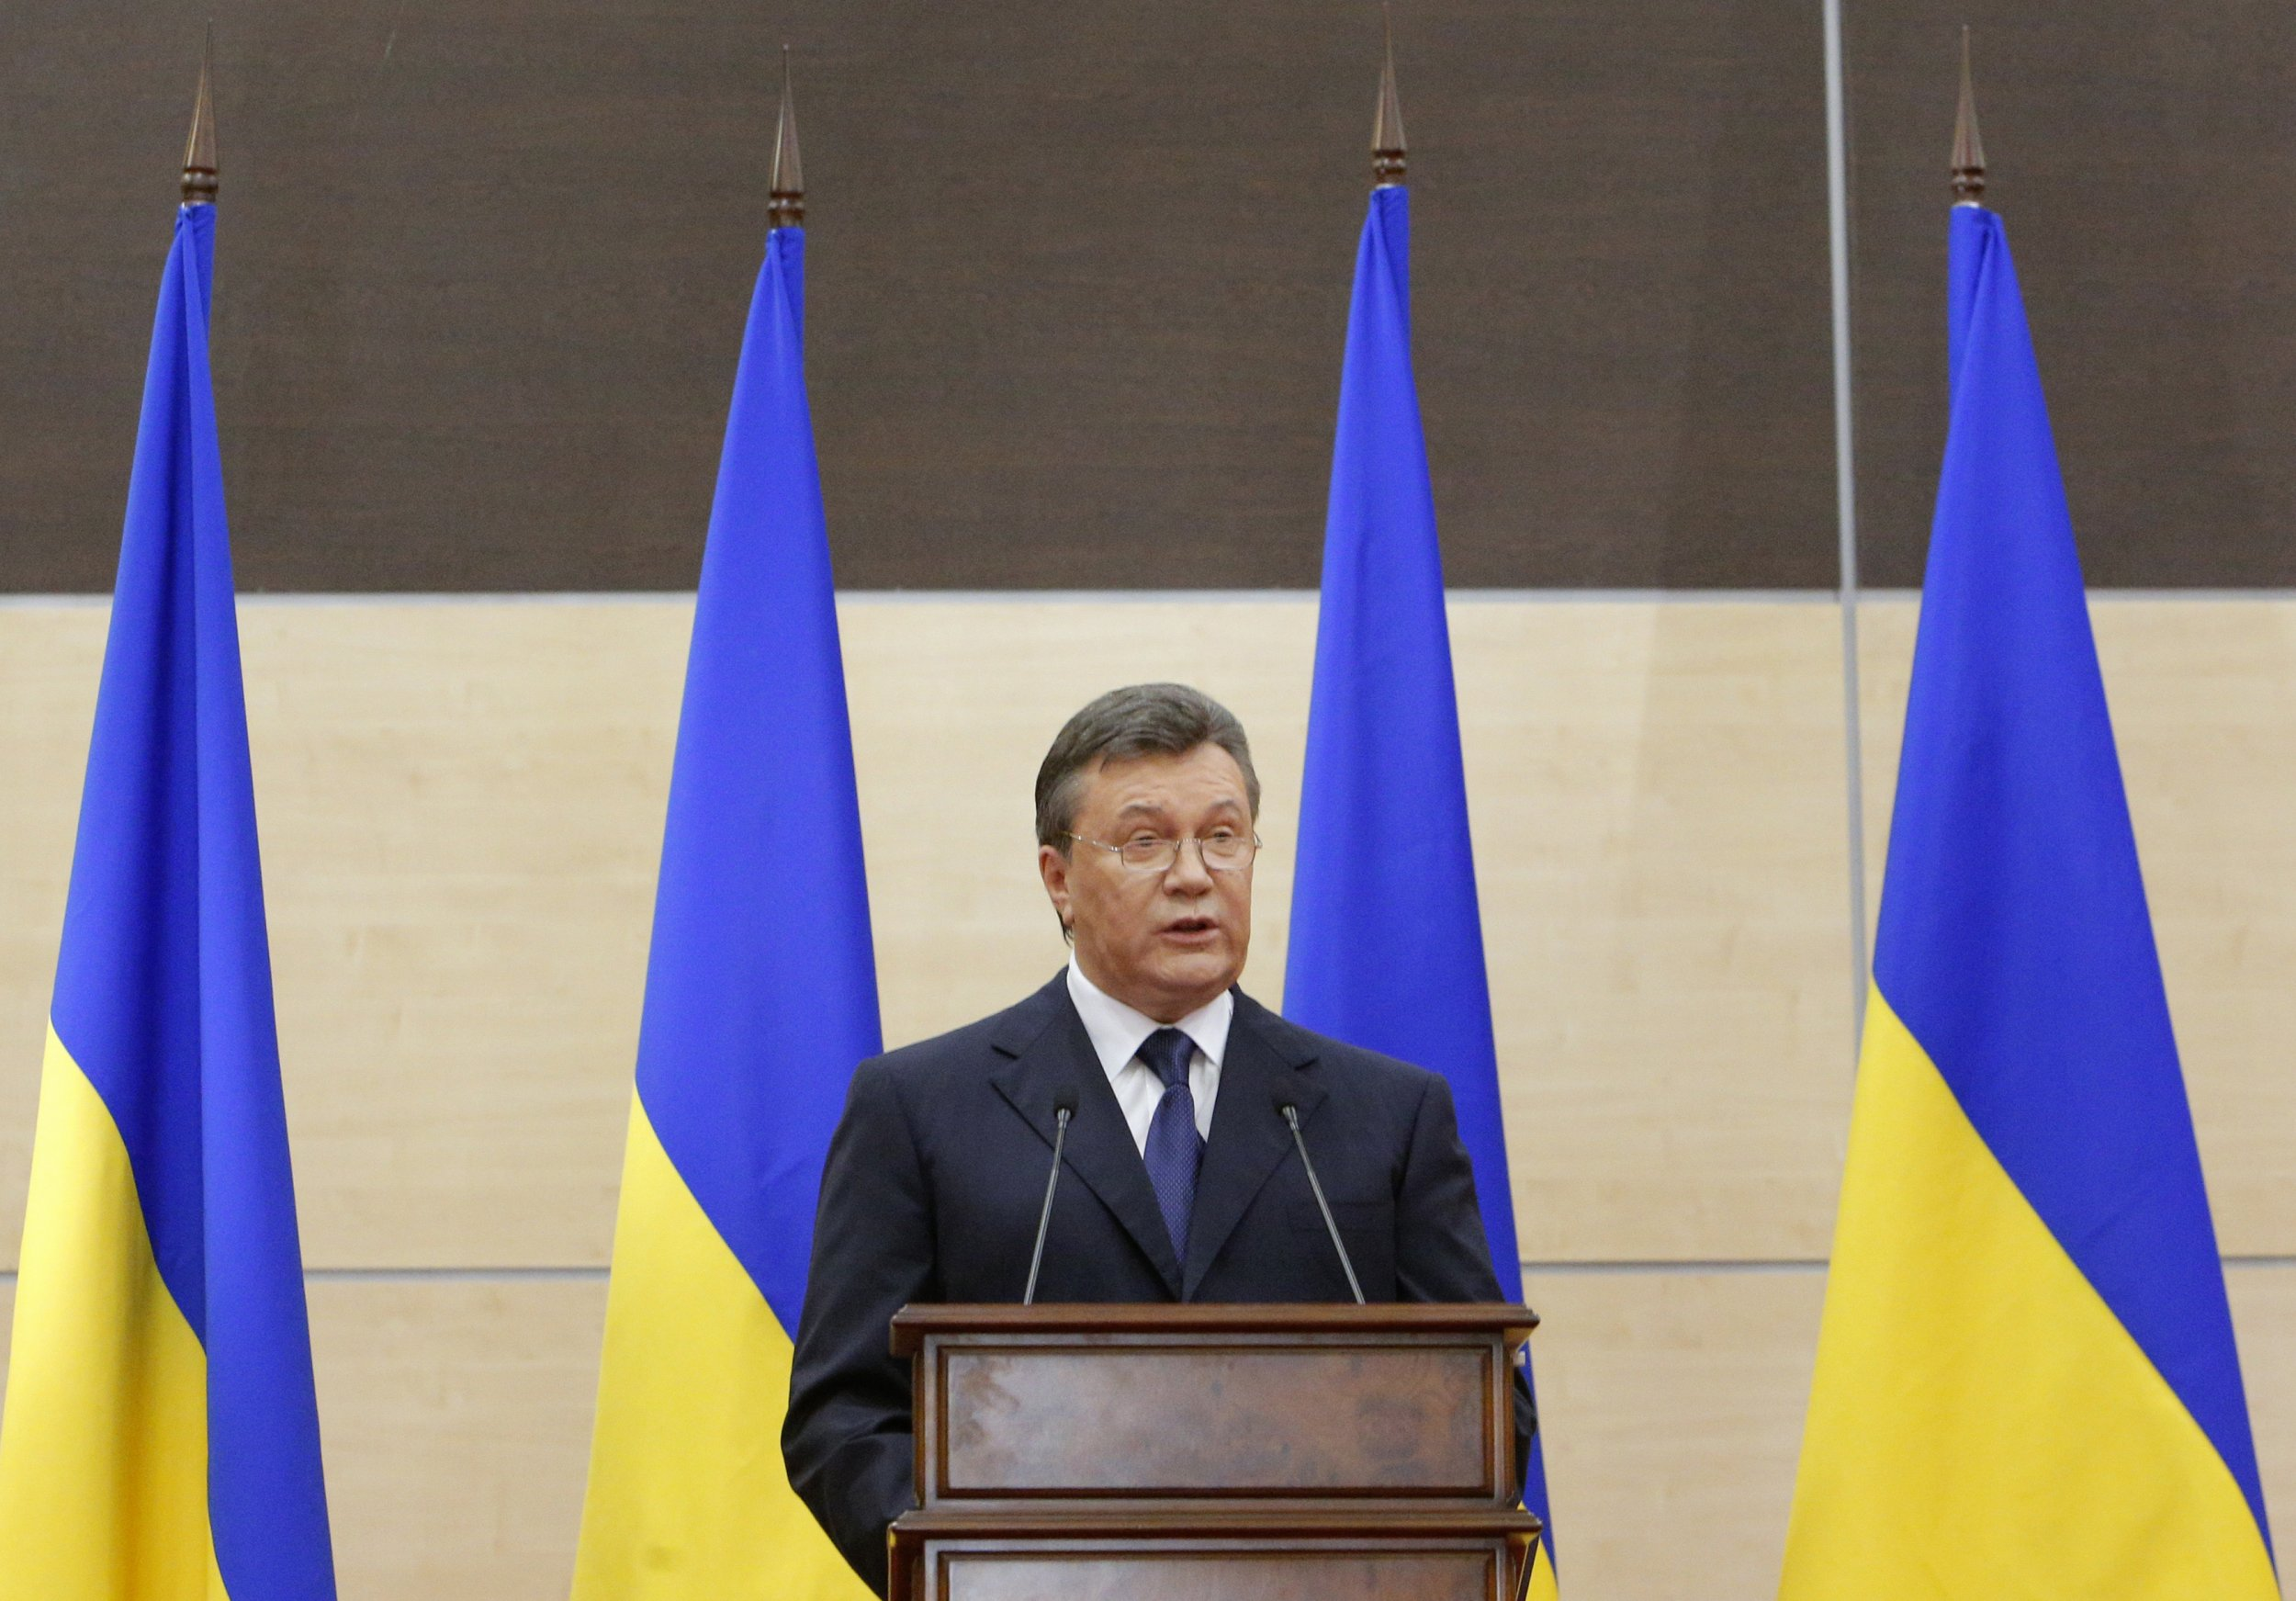 Yanukovych speaks in front of Ukrainian flags